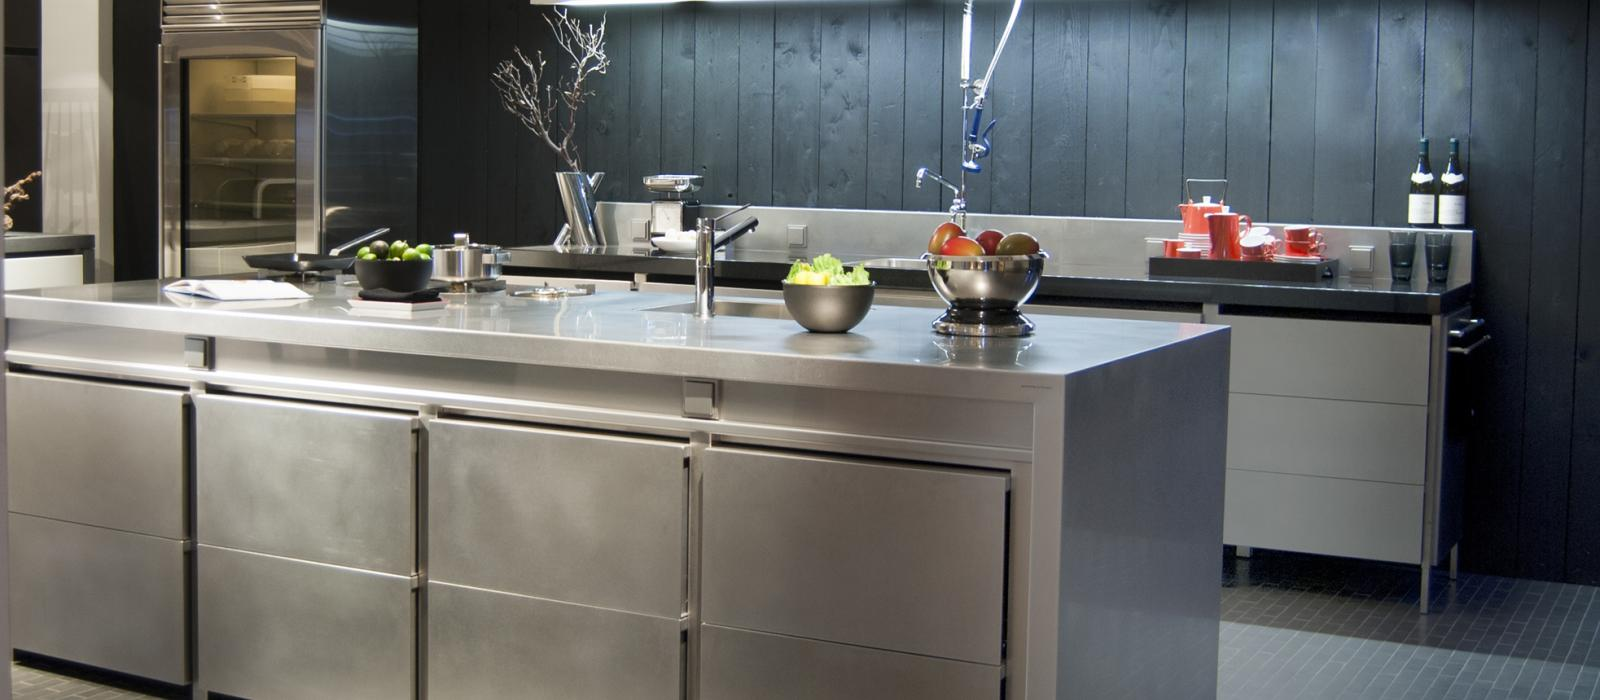 Stainless Steel Cabinets | New York Kitchen Cabinets